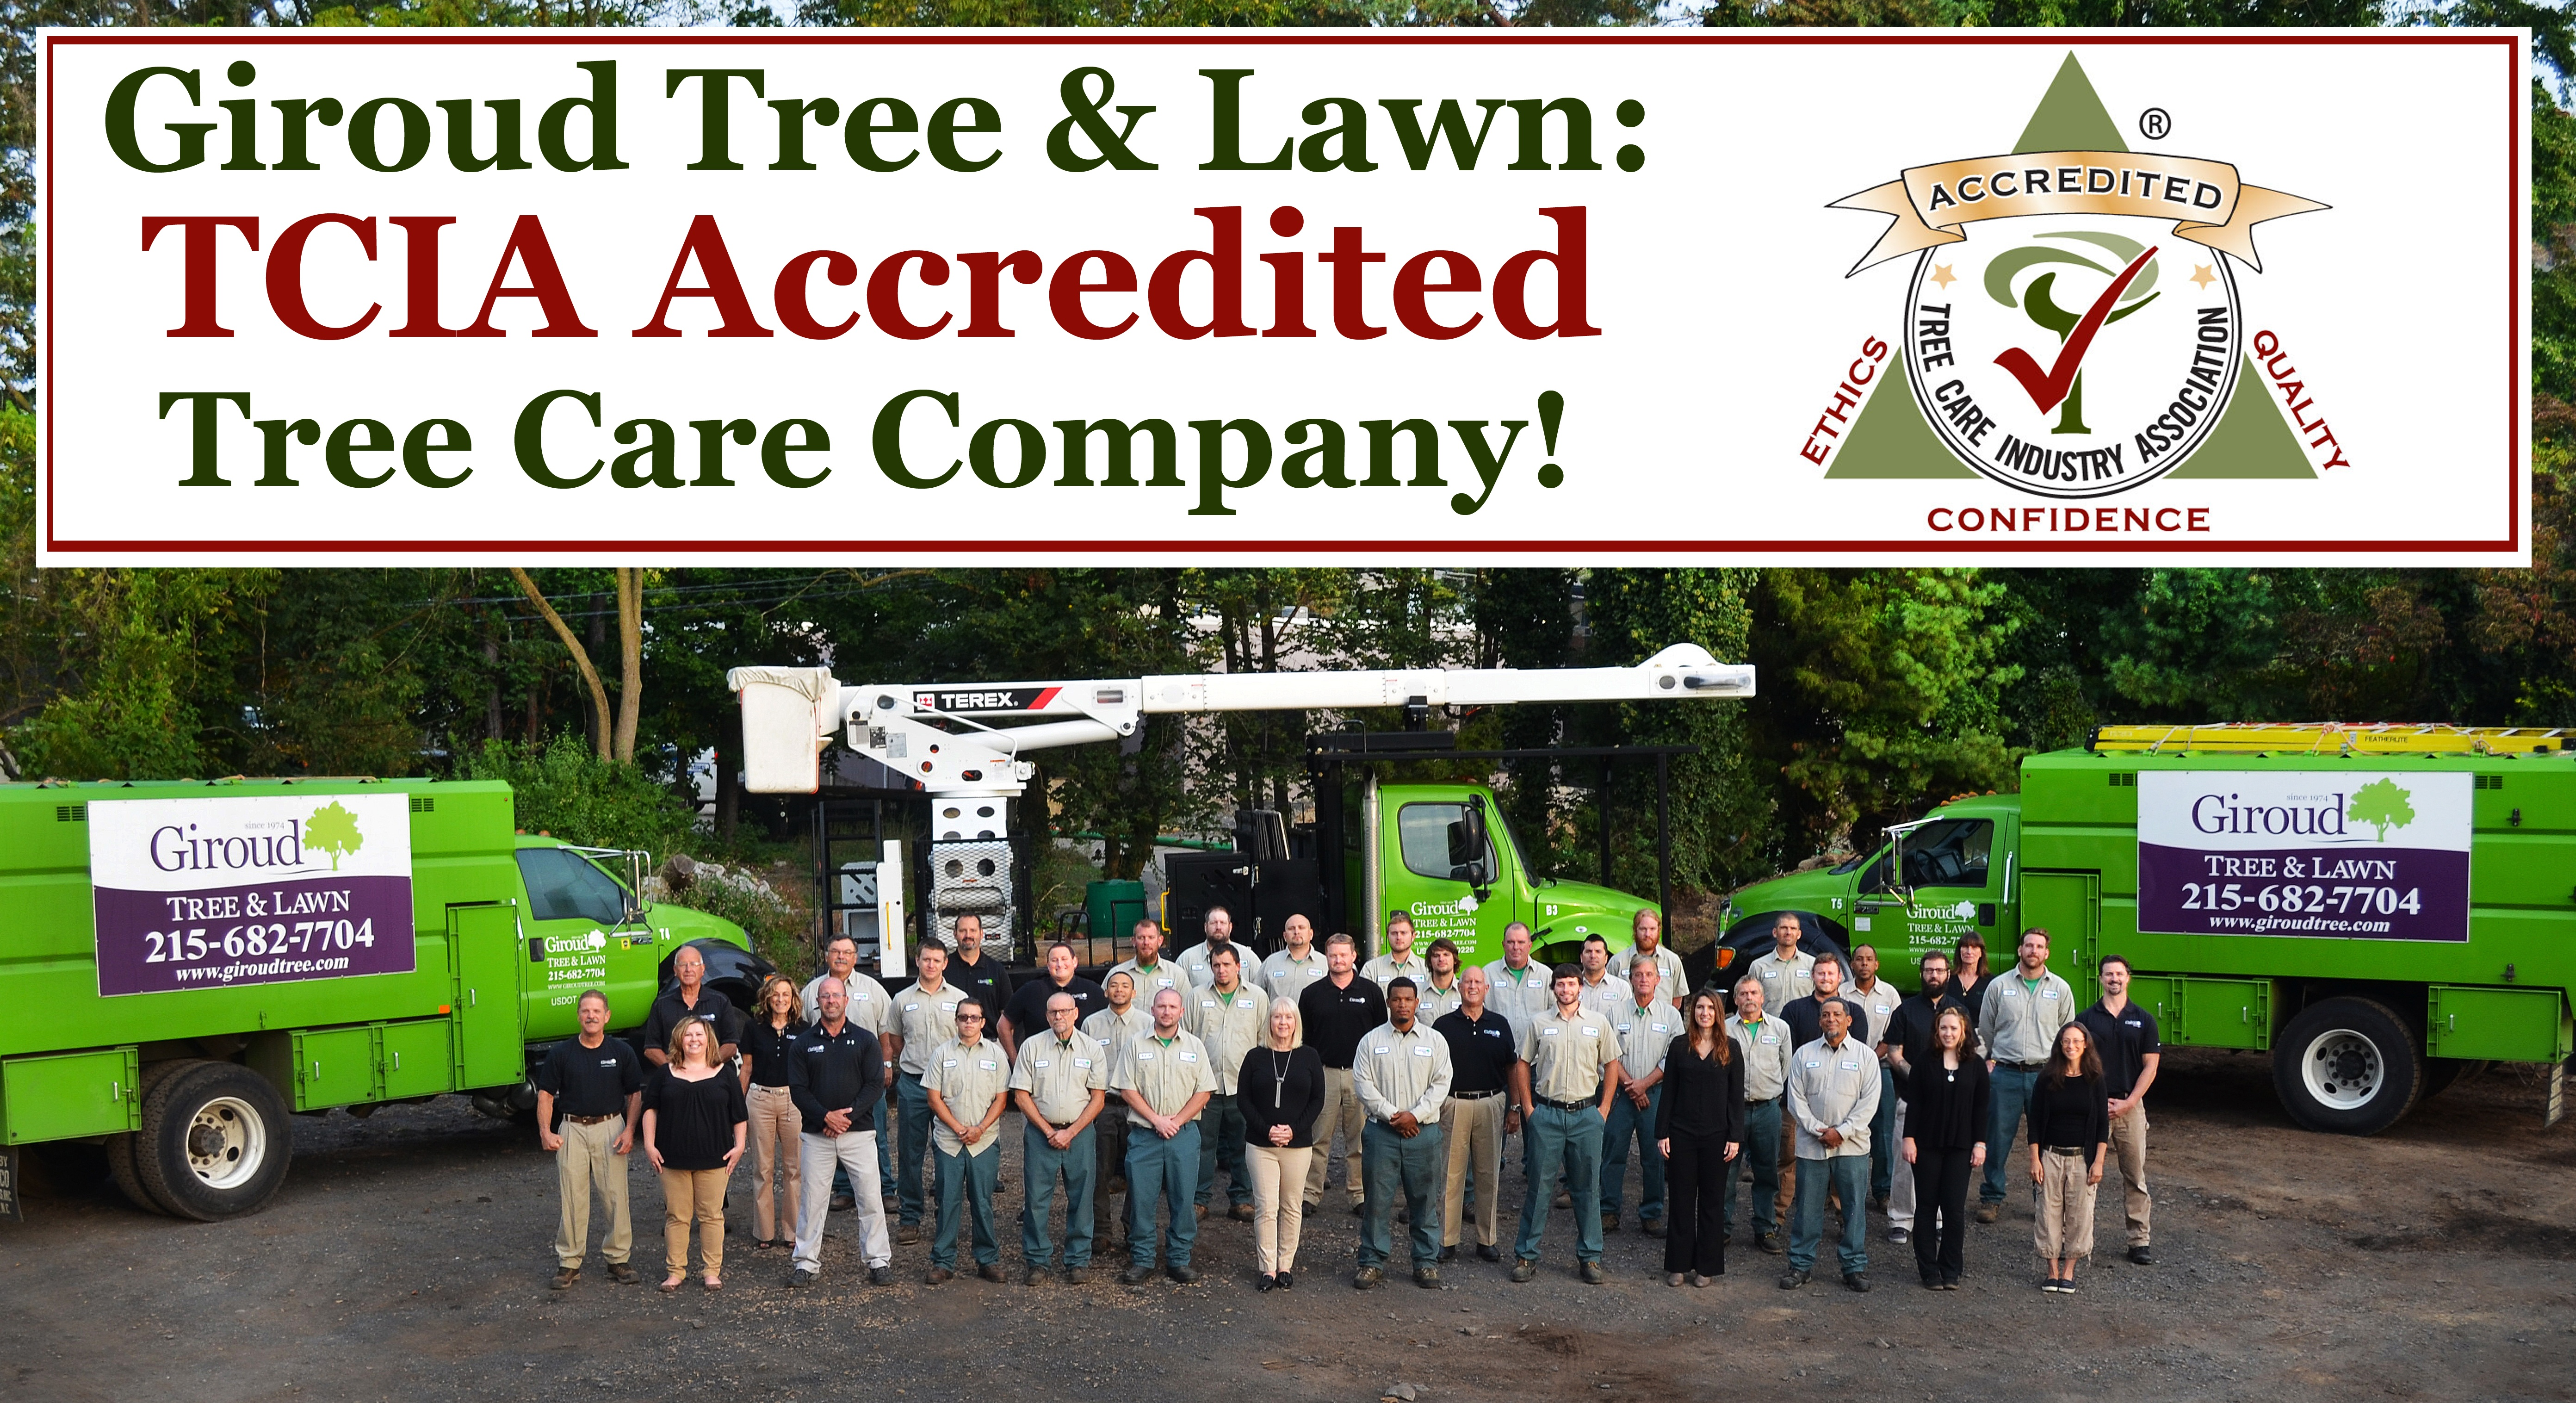 Giroud Tree & Lawn TCIA Accredited